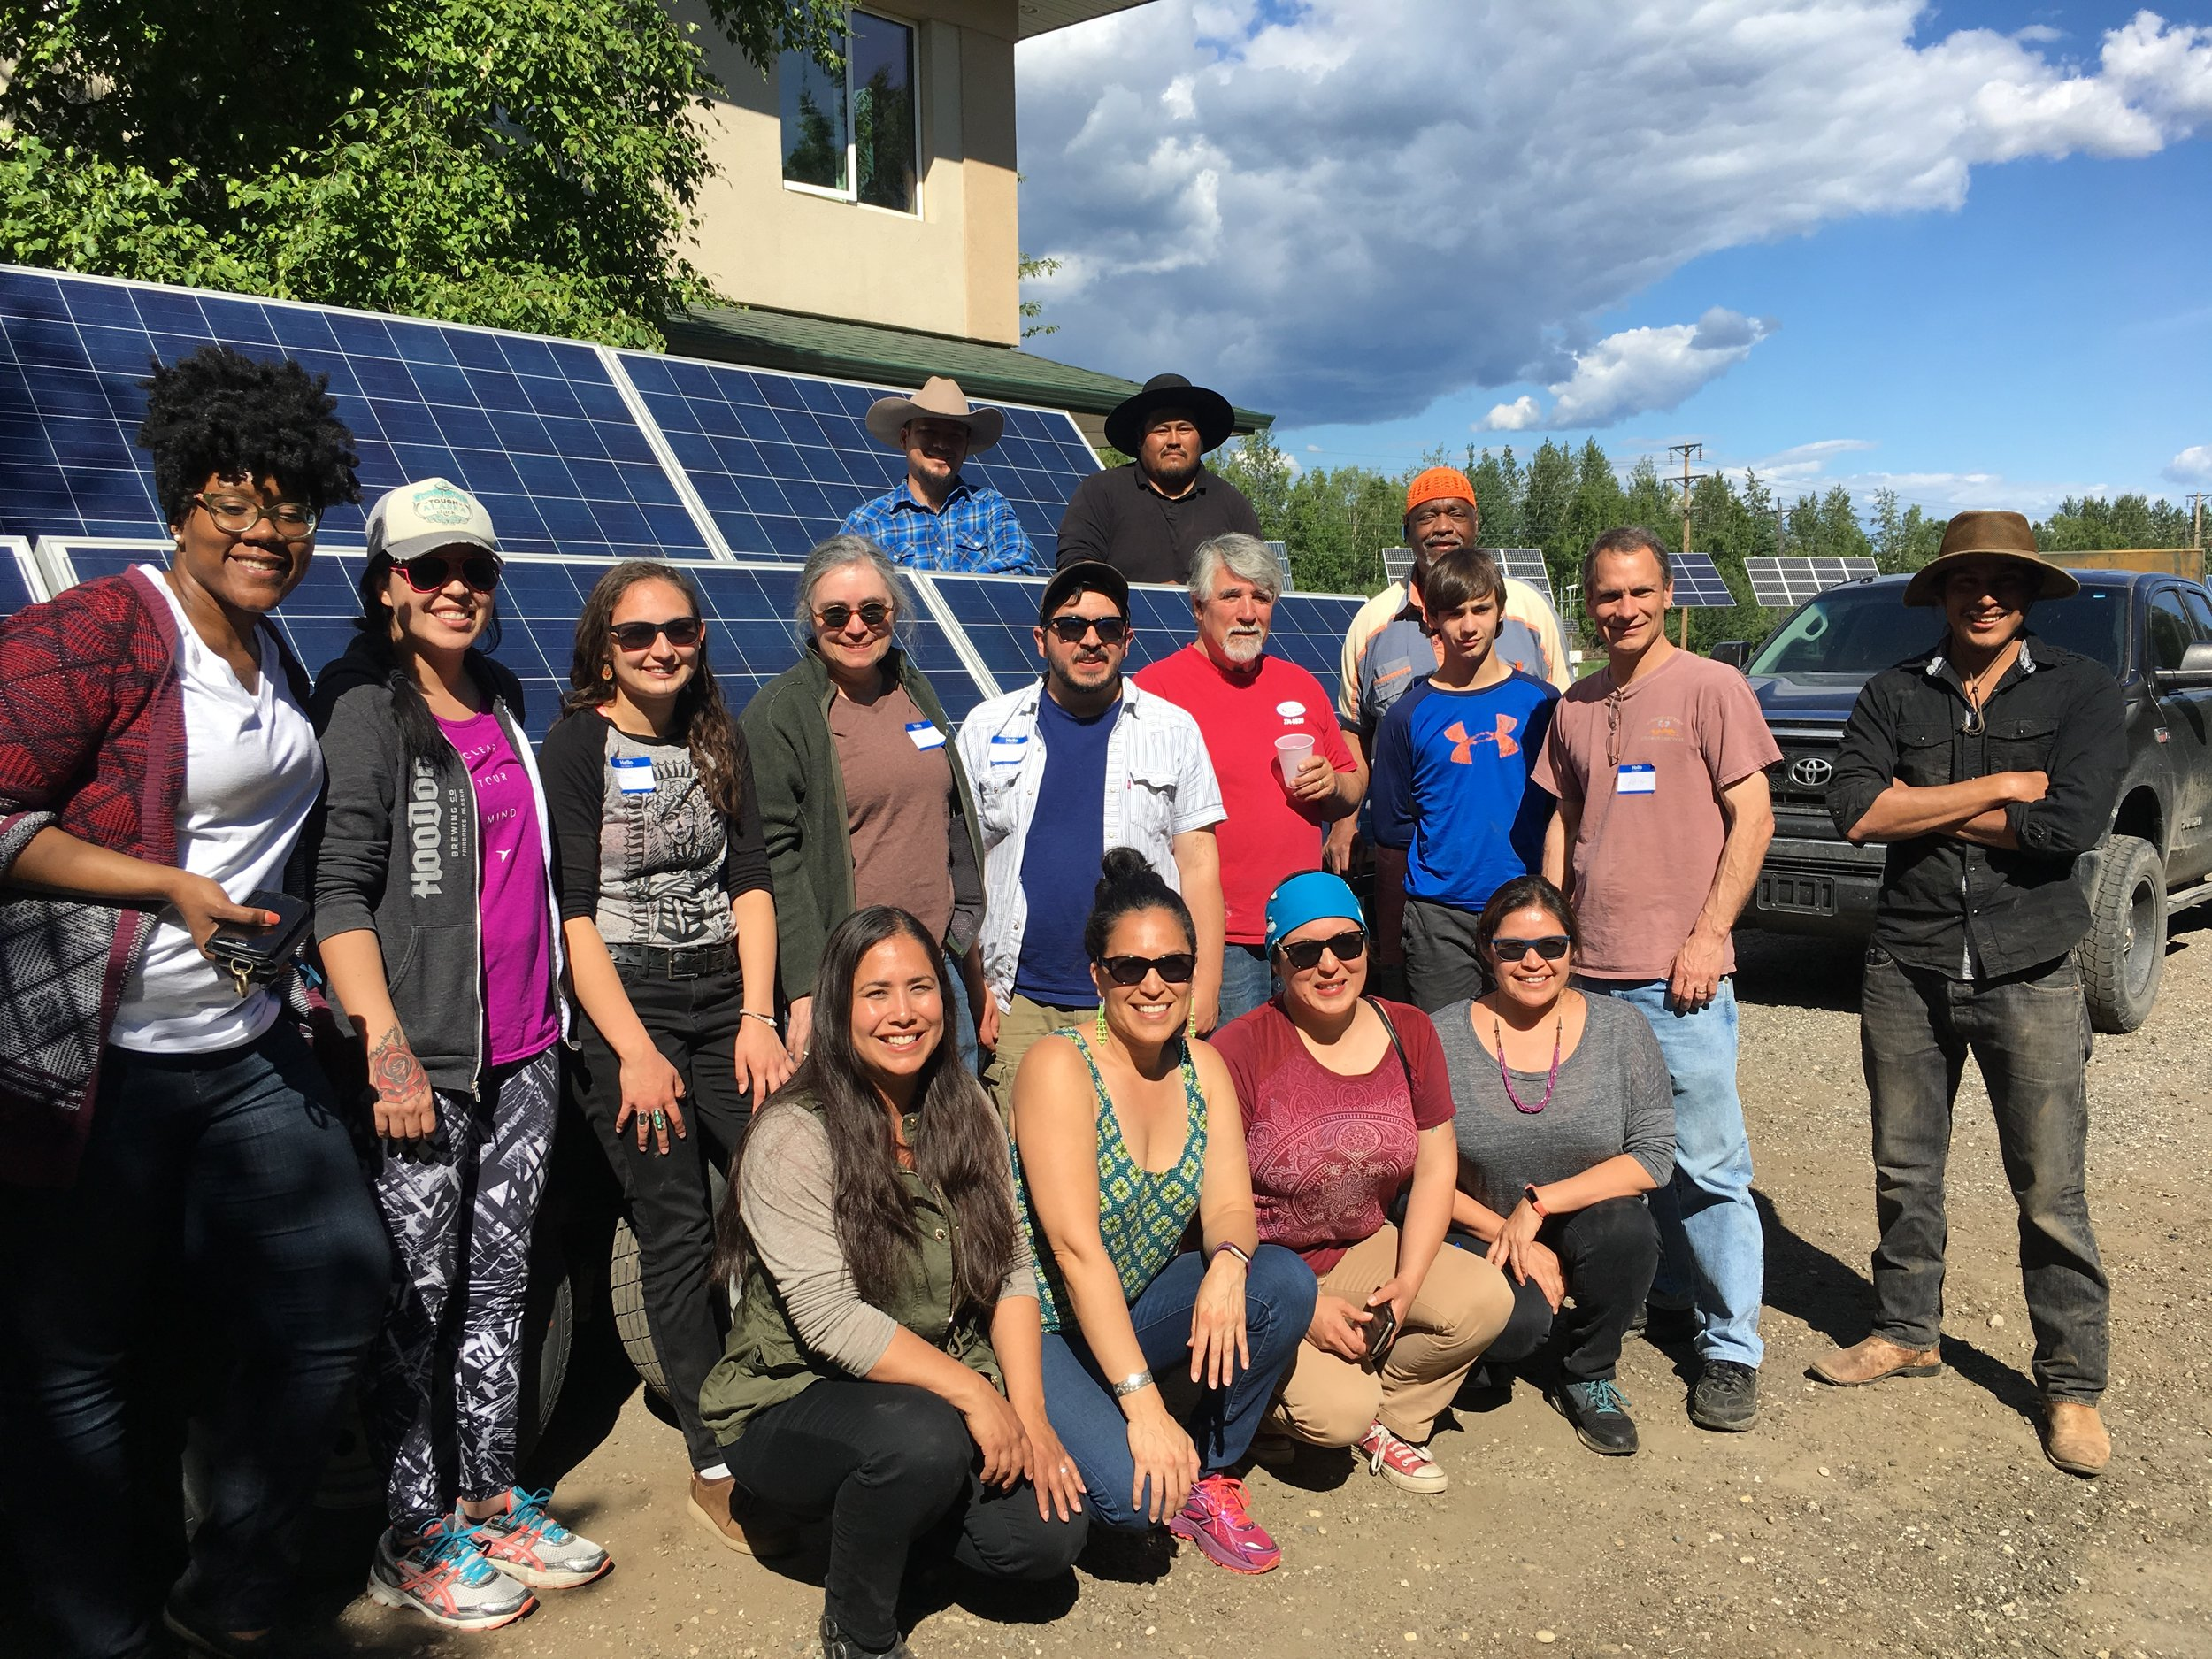 In the summer of 2017 we hosted a community solar build and together we built a mobile solar unit to power community events and our office. Thanks to our partners at  Native Renewables  and the  Fairbanks Climate Action Coalition !